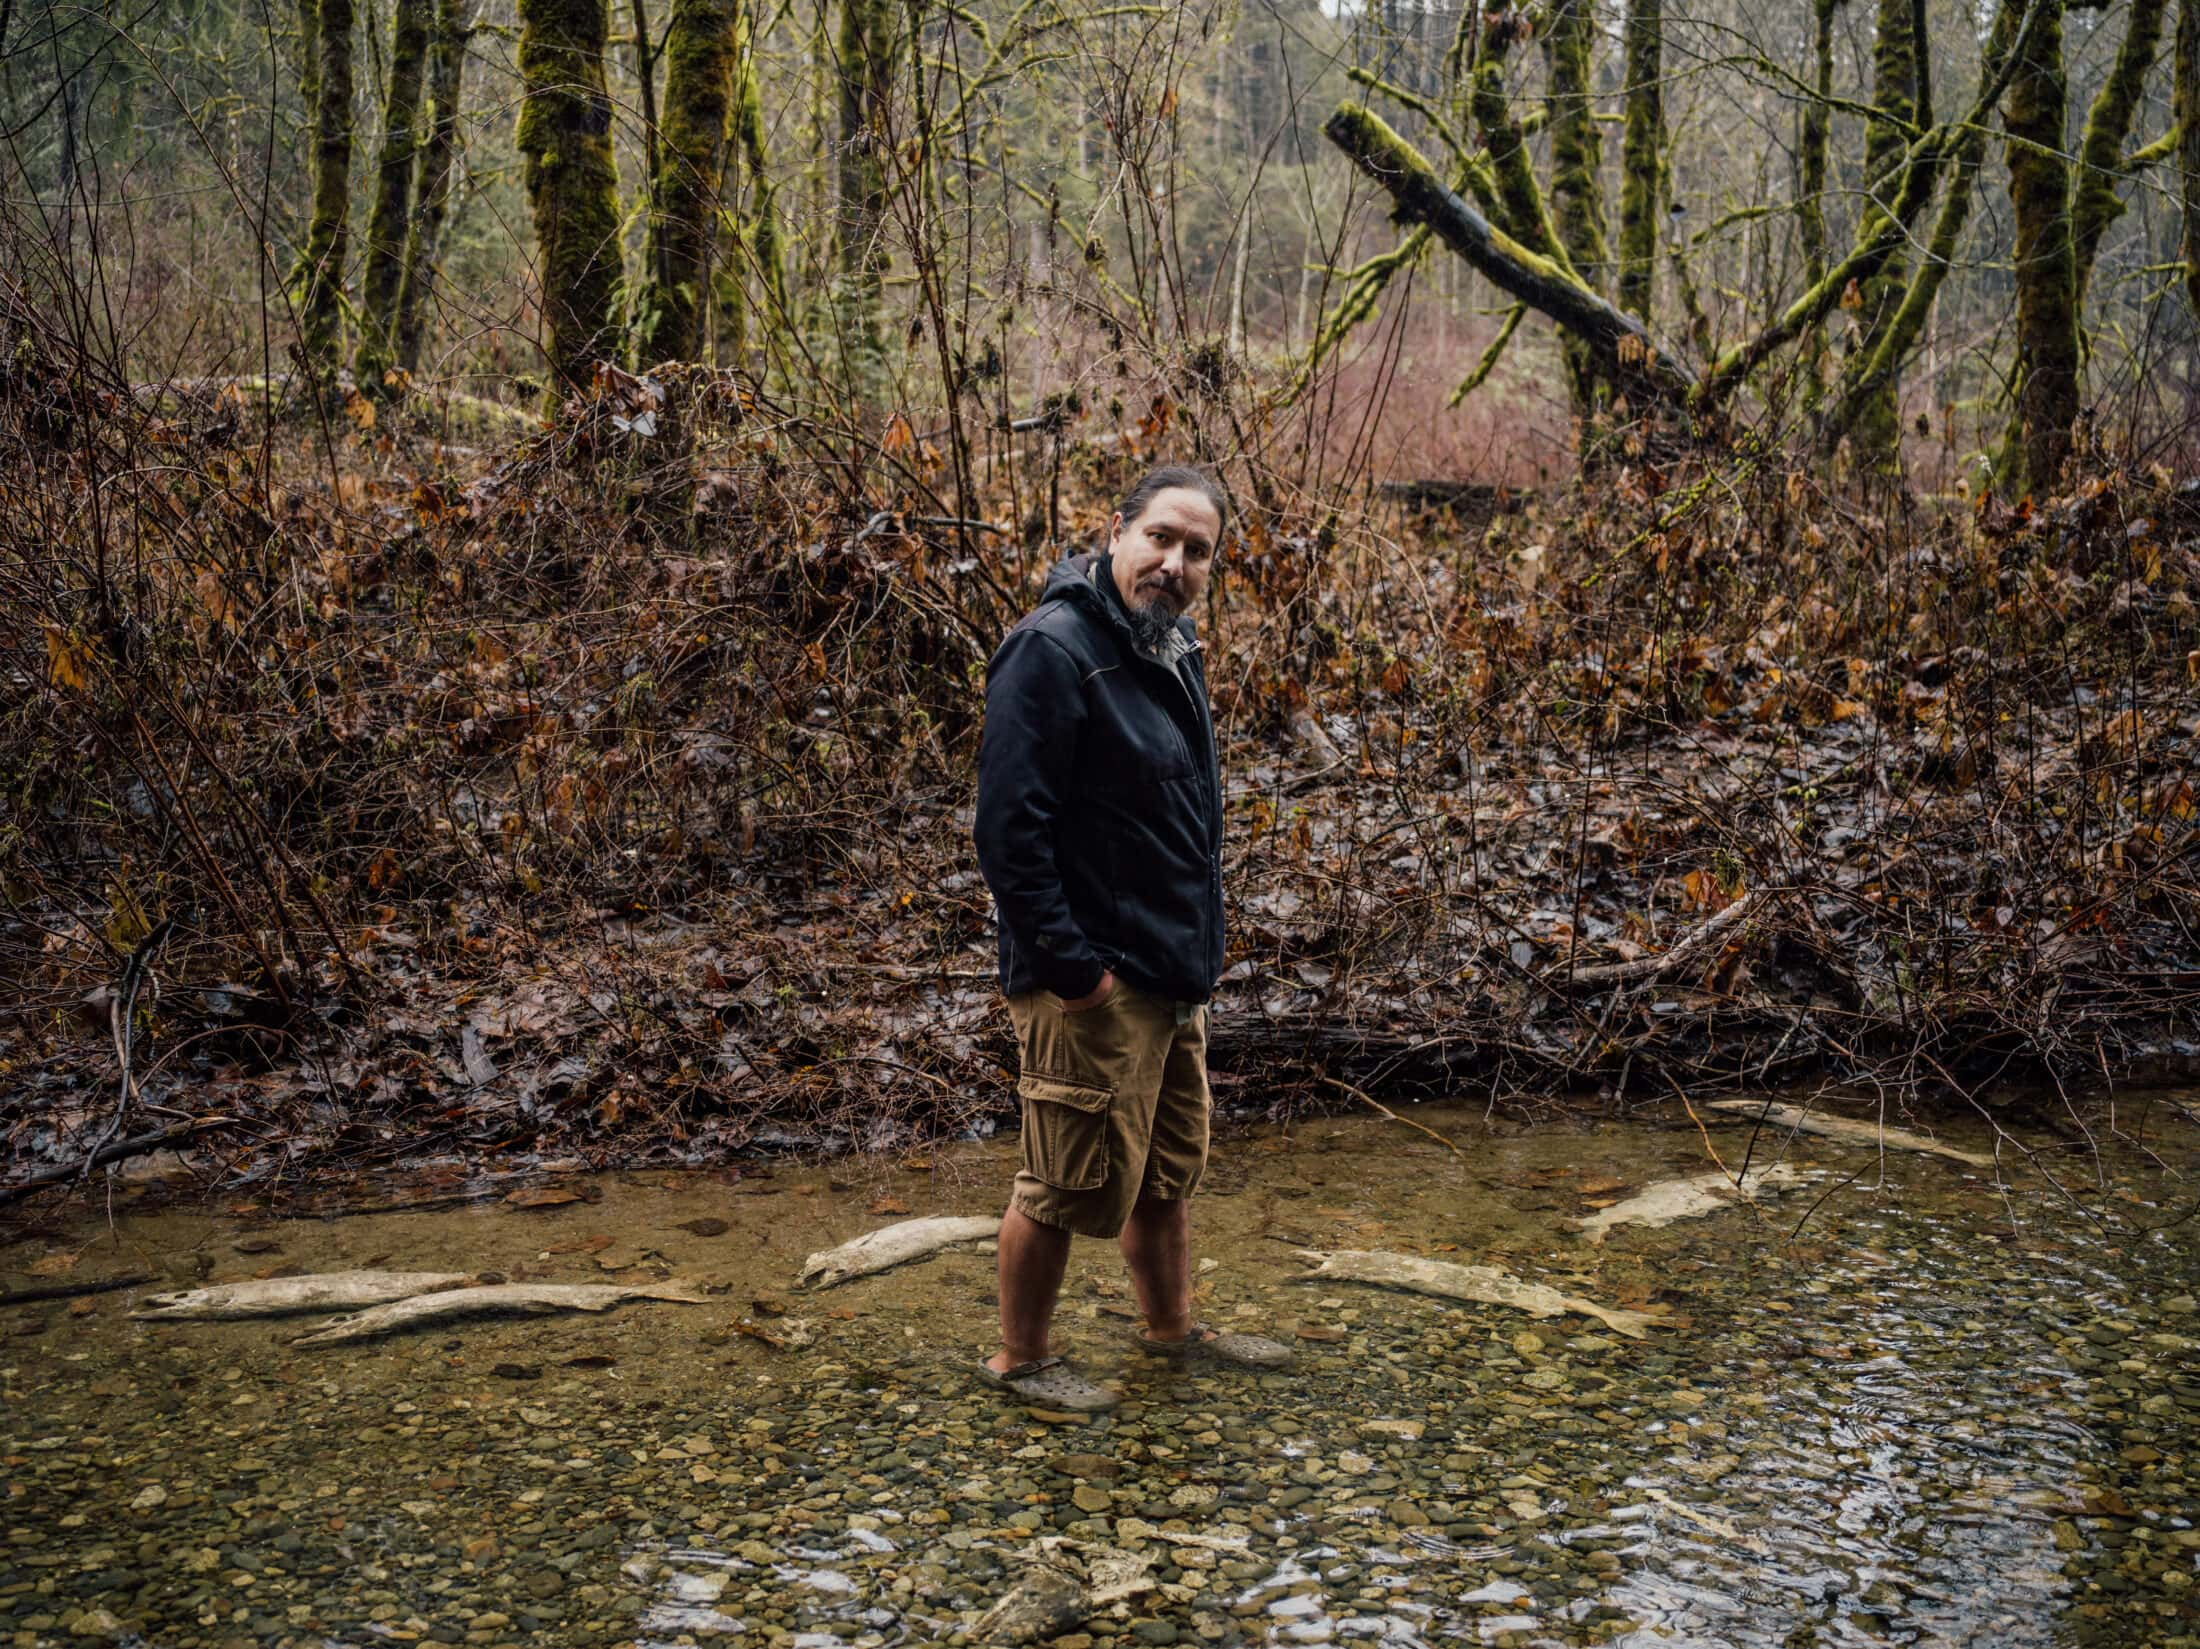 Tim Kulchyski Cowichan Tribes member stands in a river